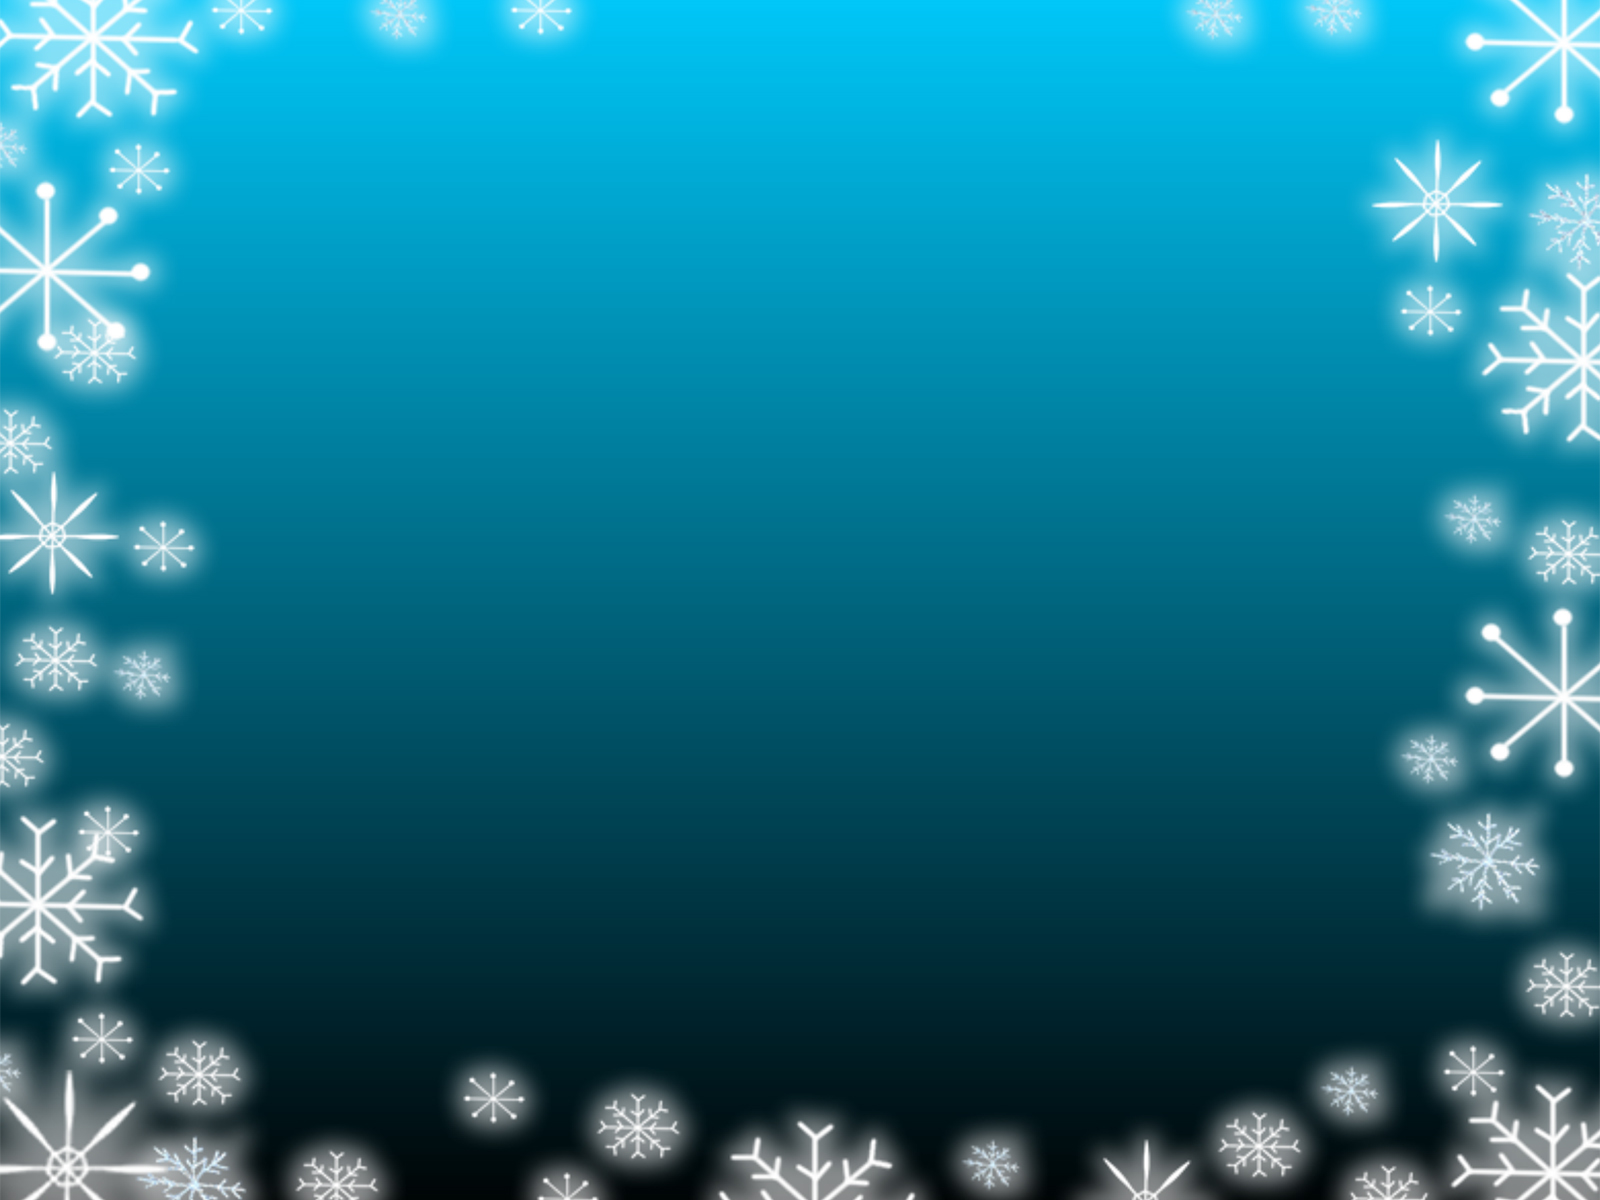 blue gradient snowflake backgrounds blue border